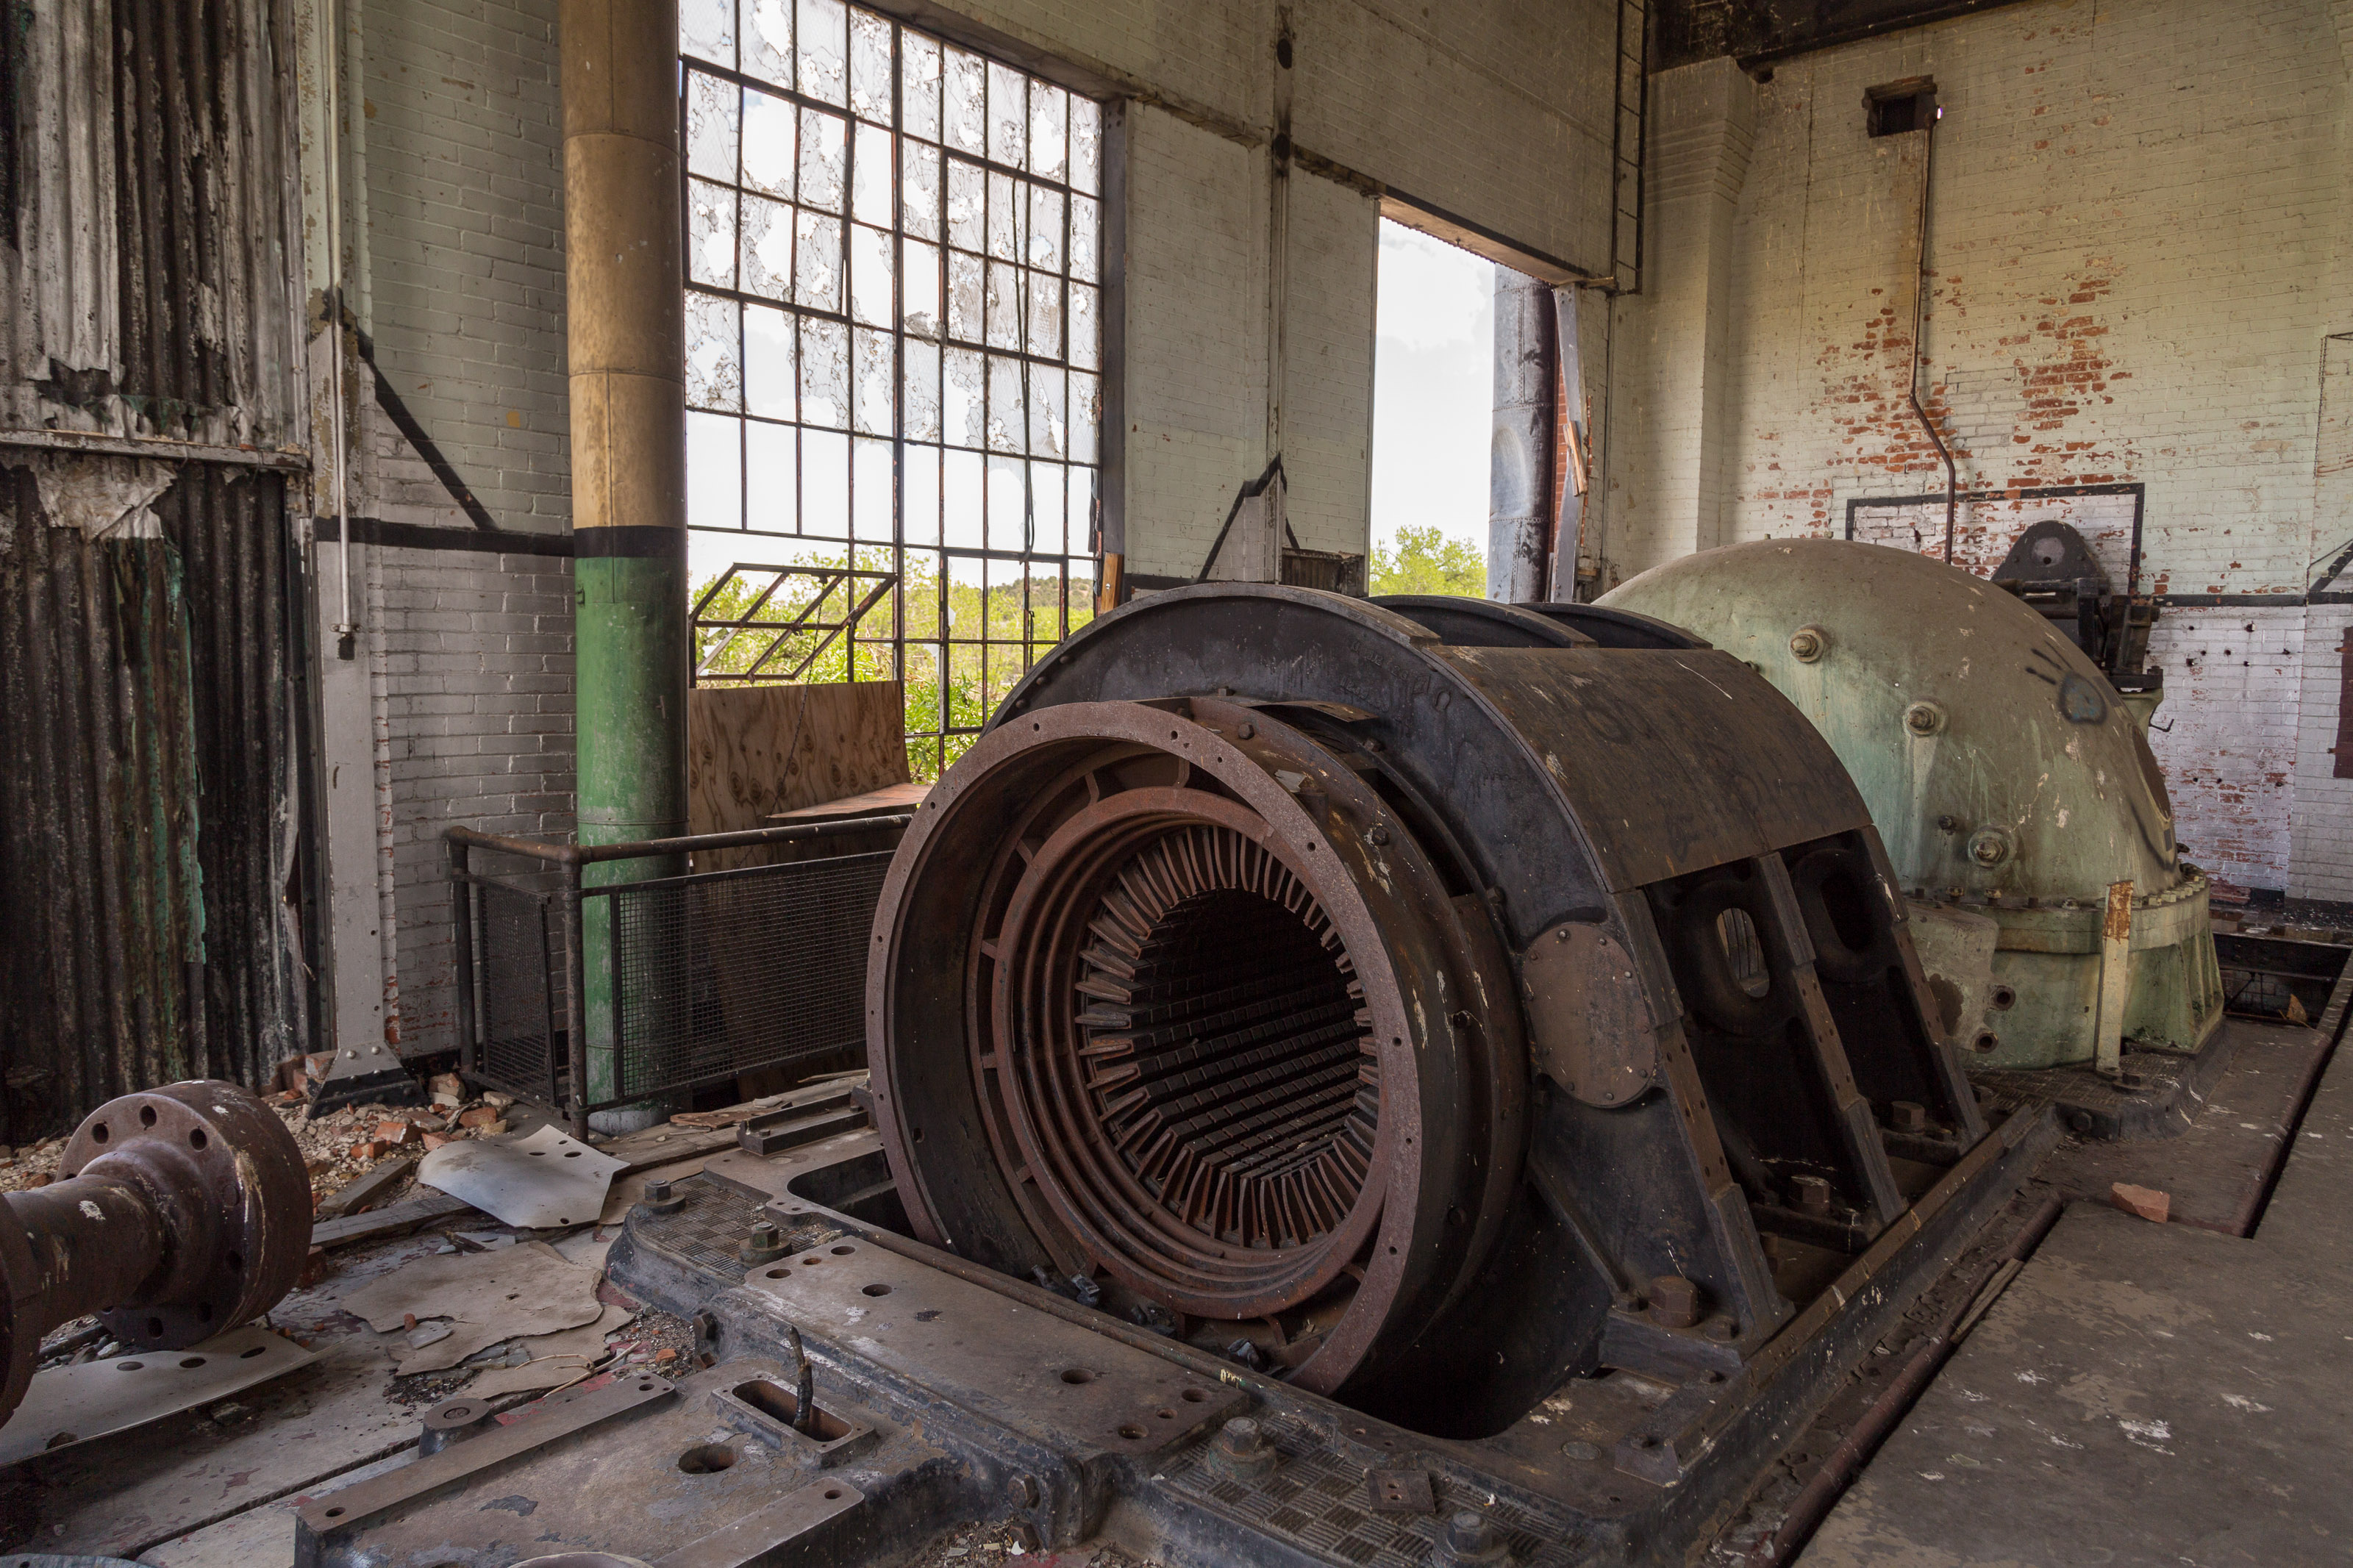 Another view of one of the generators, completely looted of any copper it had in it